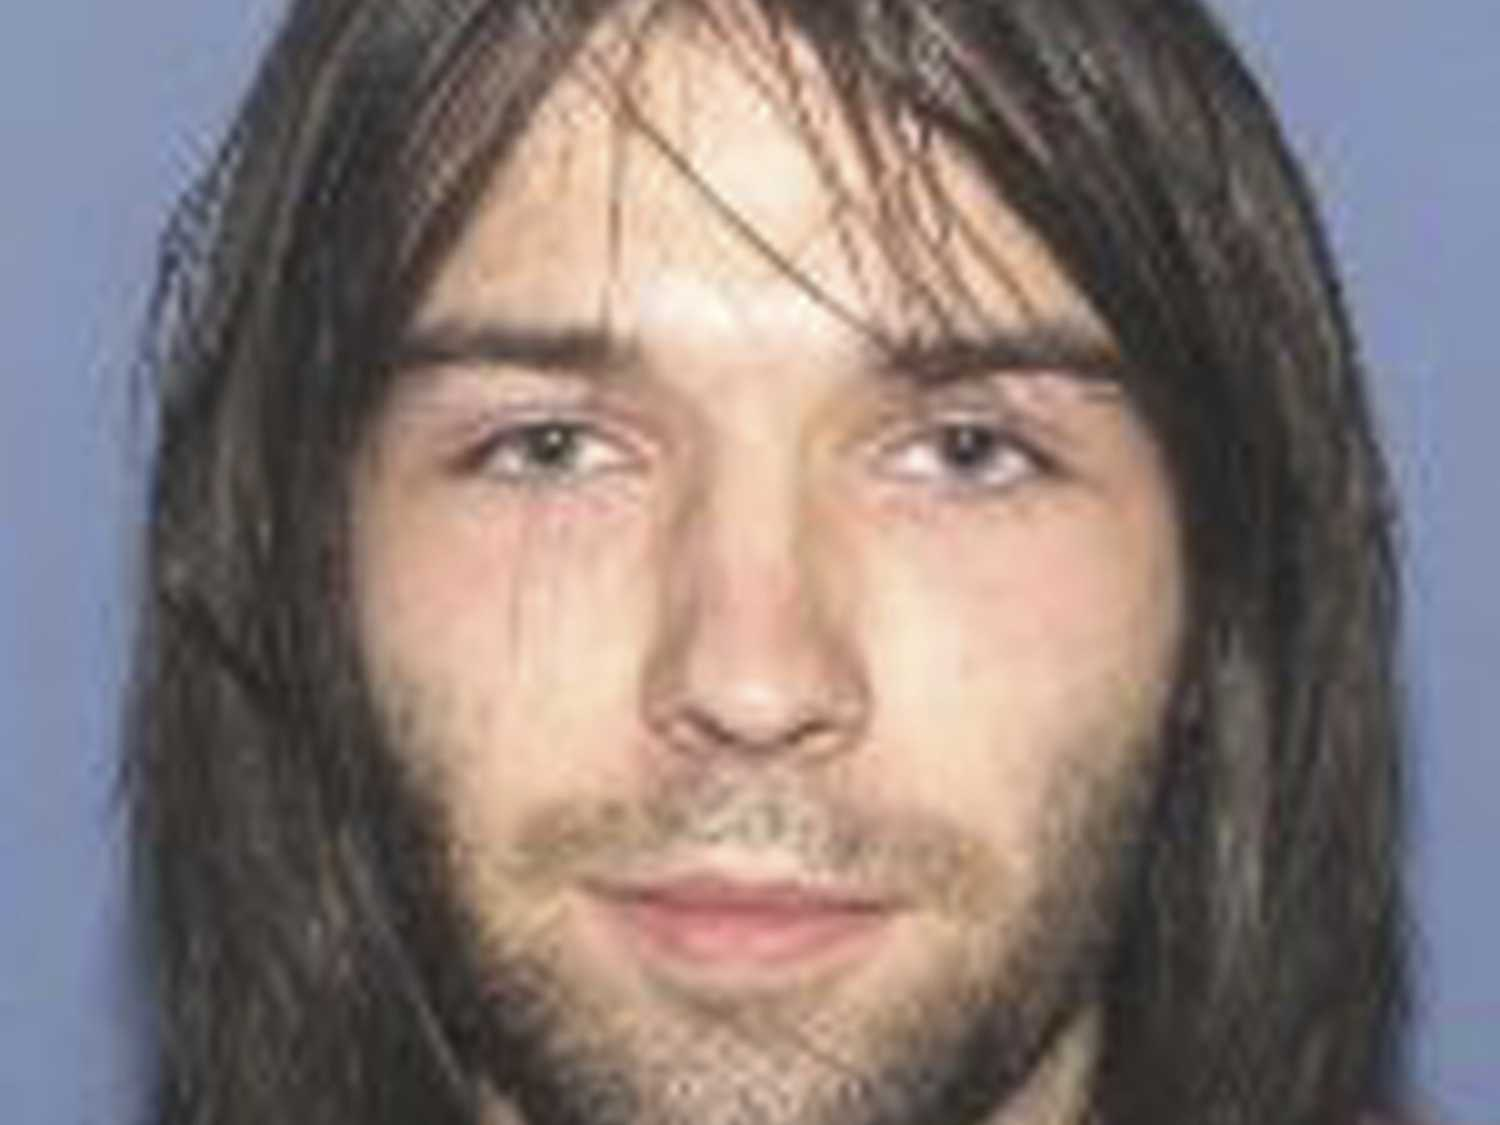 Suspect in 4 Ohio Slayings Arrested While Walking Along Road